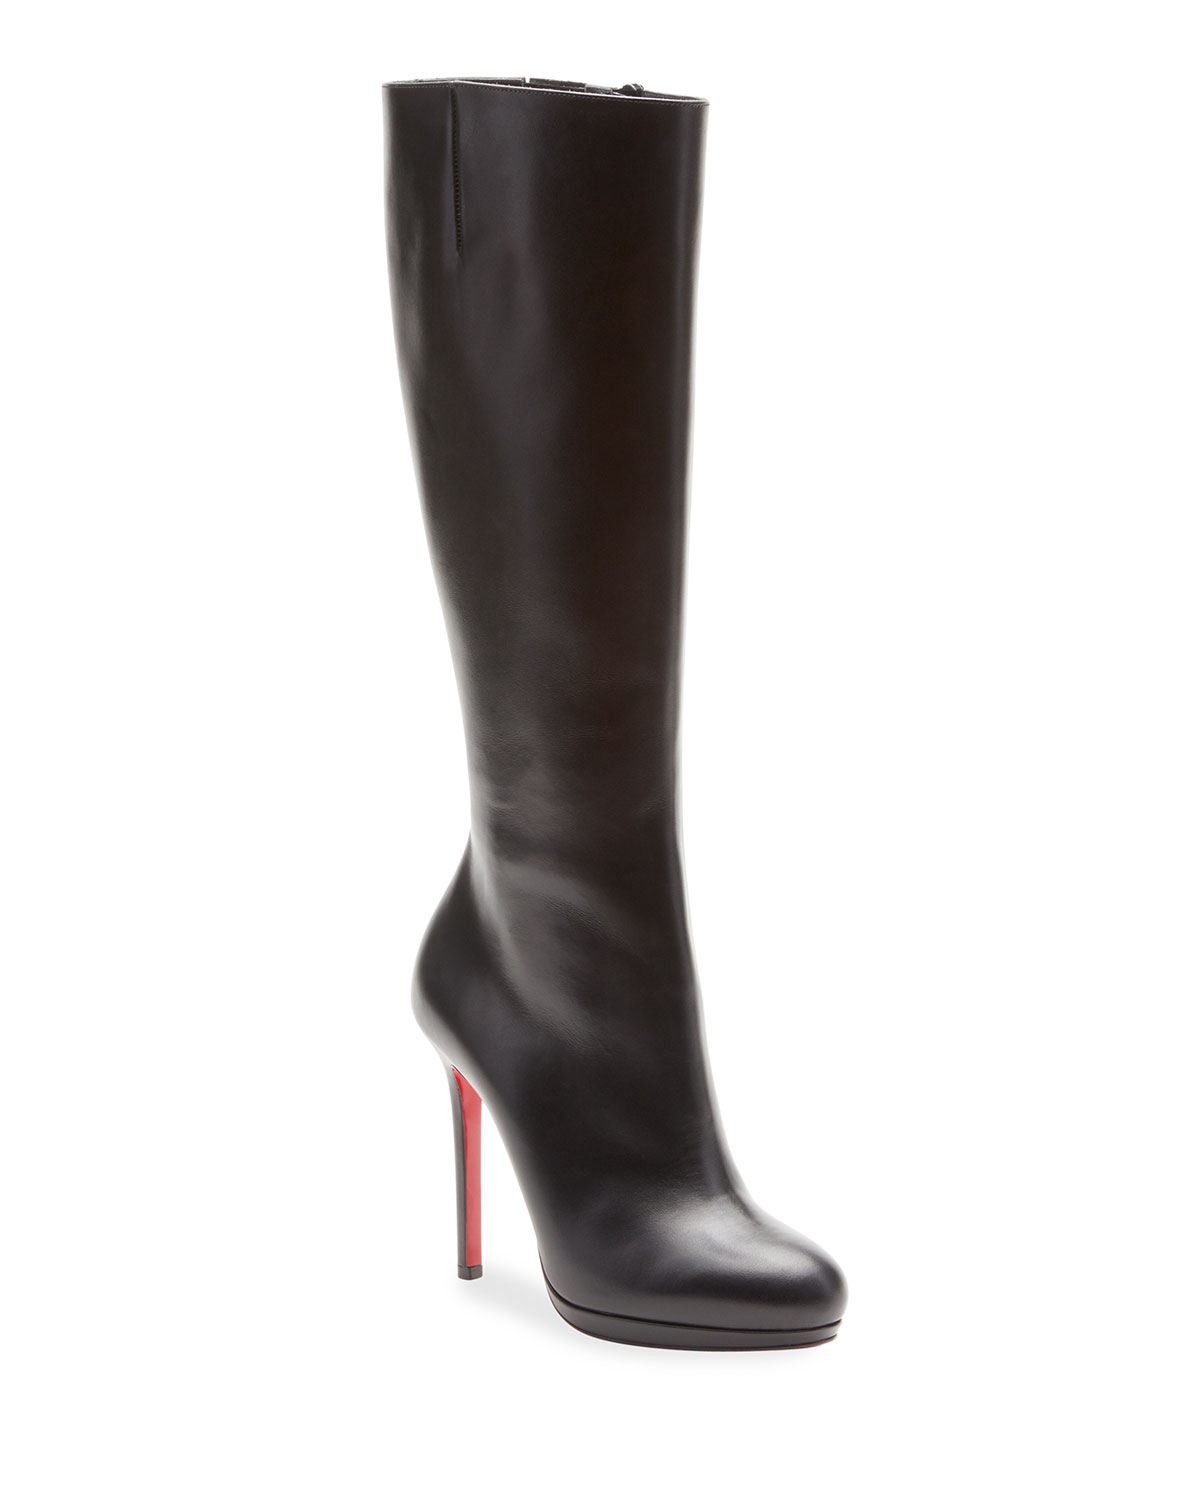 info for 270fd a9184 Botalili Tall Red Sole Boot